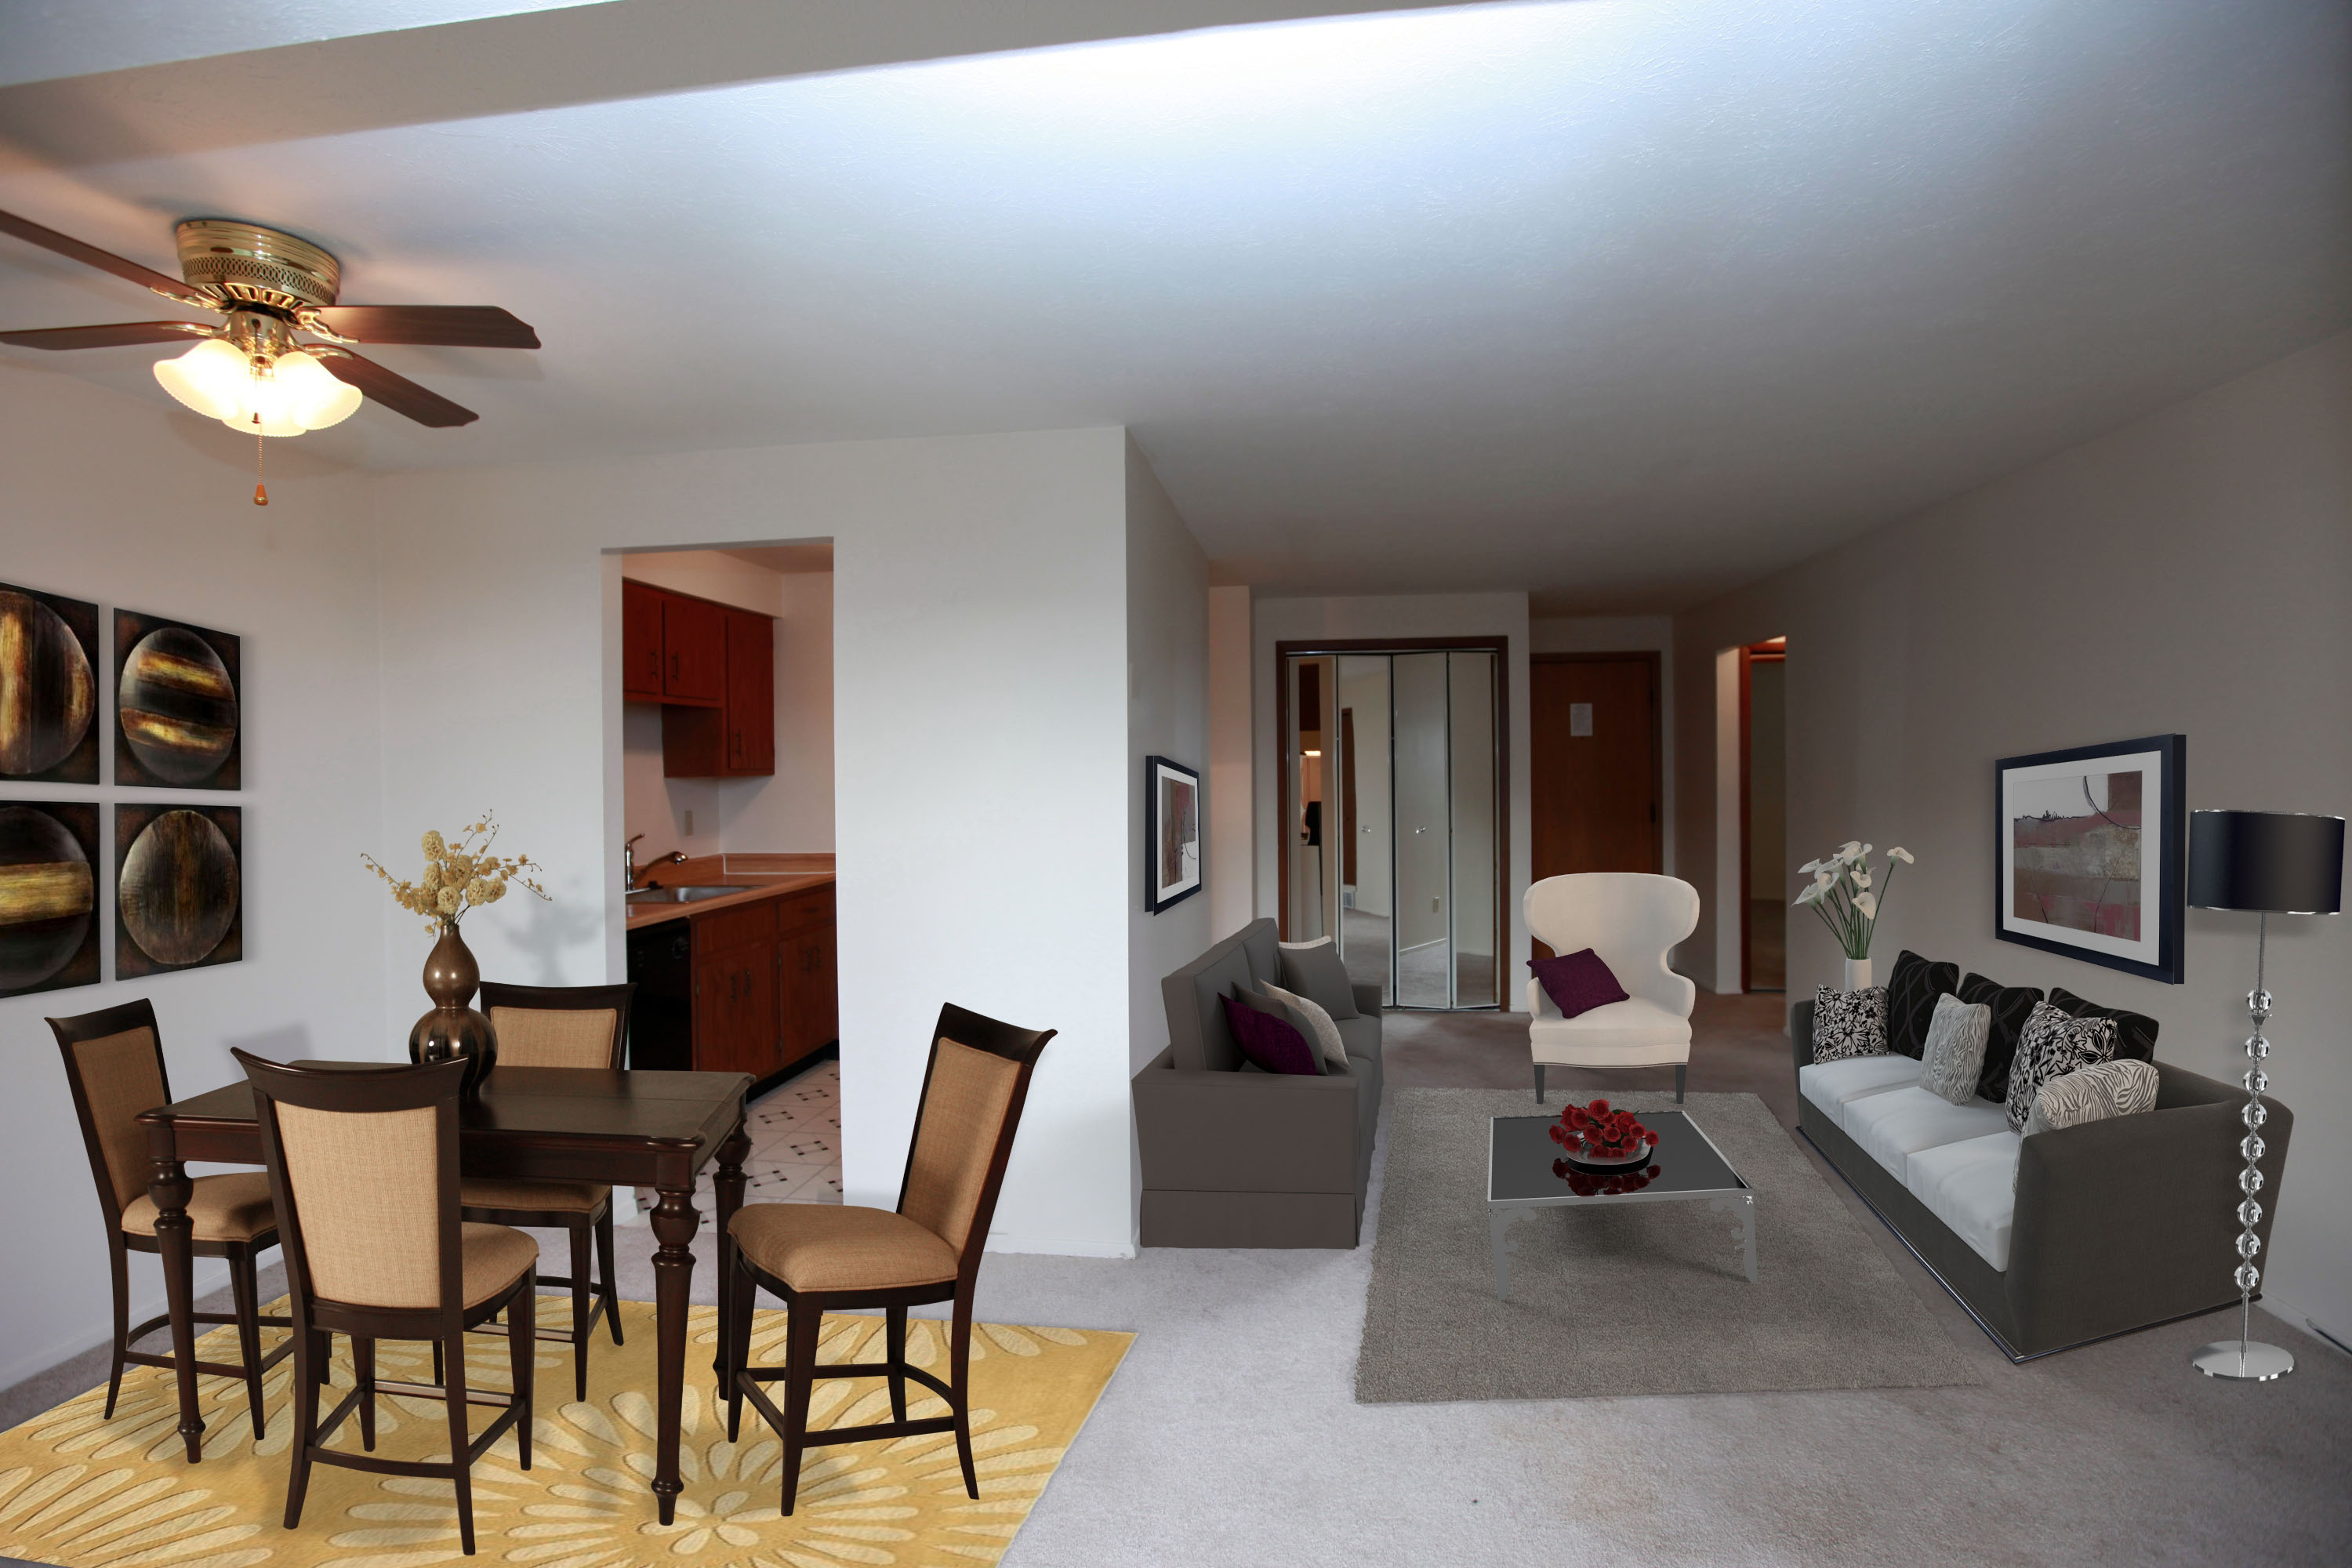 1A Living Room Furnished at the Greenridge on Euclid Apartments in Euclid, OH